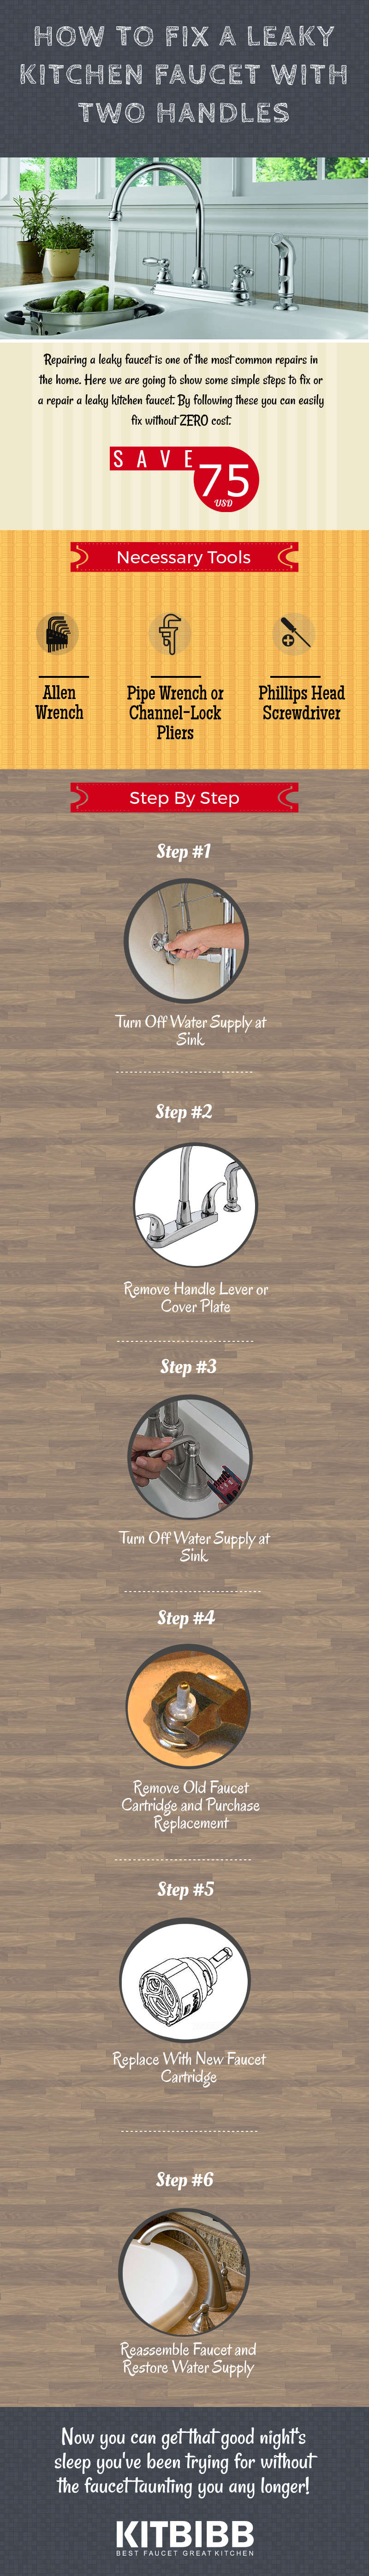 100+ [ How To Fix A Dripping Kitchen Faucet ] | How To Fix A Leaky ...